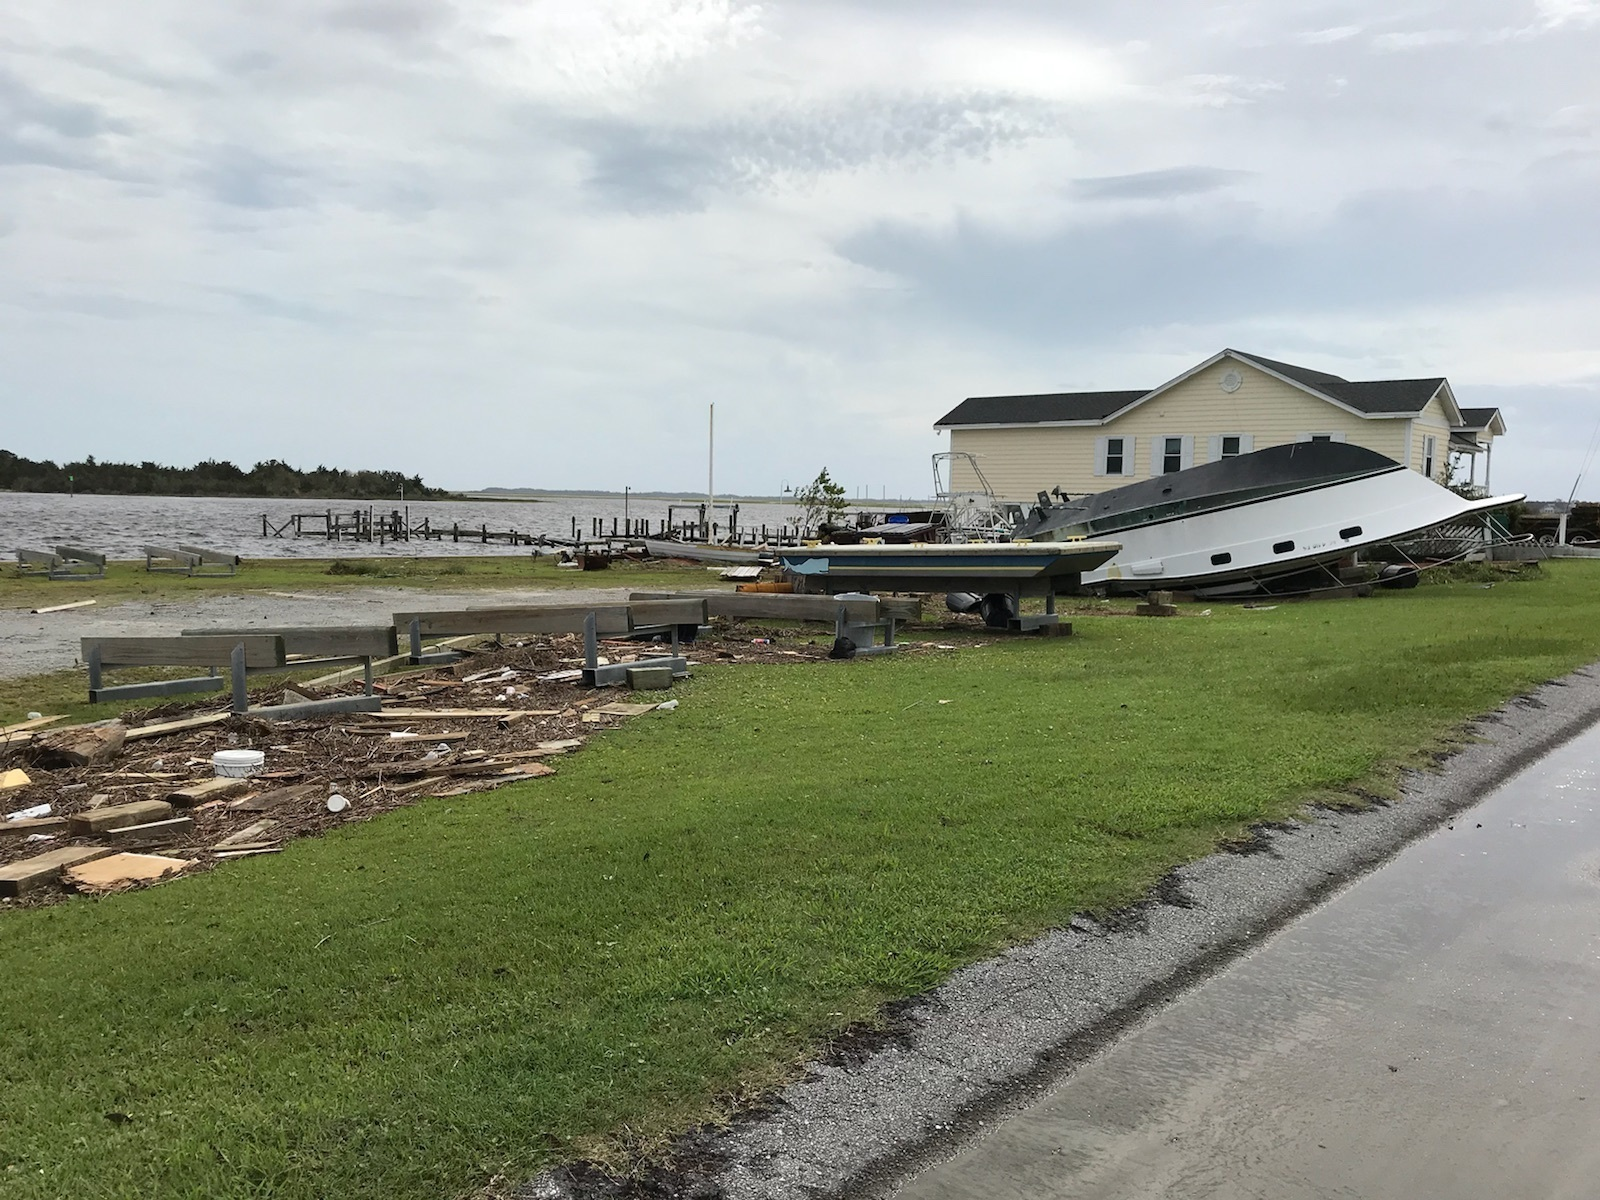 Sep 20, 2018 0 SWANSBORO, N.C. - A boat is beached on land due to the effects of Hurricane Florence in Swansboro, N.C. Sept. 17, 2018. Florence, with its heavy rain and strong winds of over 100 miles per hour, is the biggest storm to hit the Carolinas since Hurricane Floyd in 1999. Private meteorologists estimate the economic loss to be $10-$60 billion in damages. (U.S. Marine Corps photo by Pfc. Nello Miele)